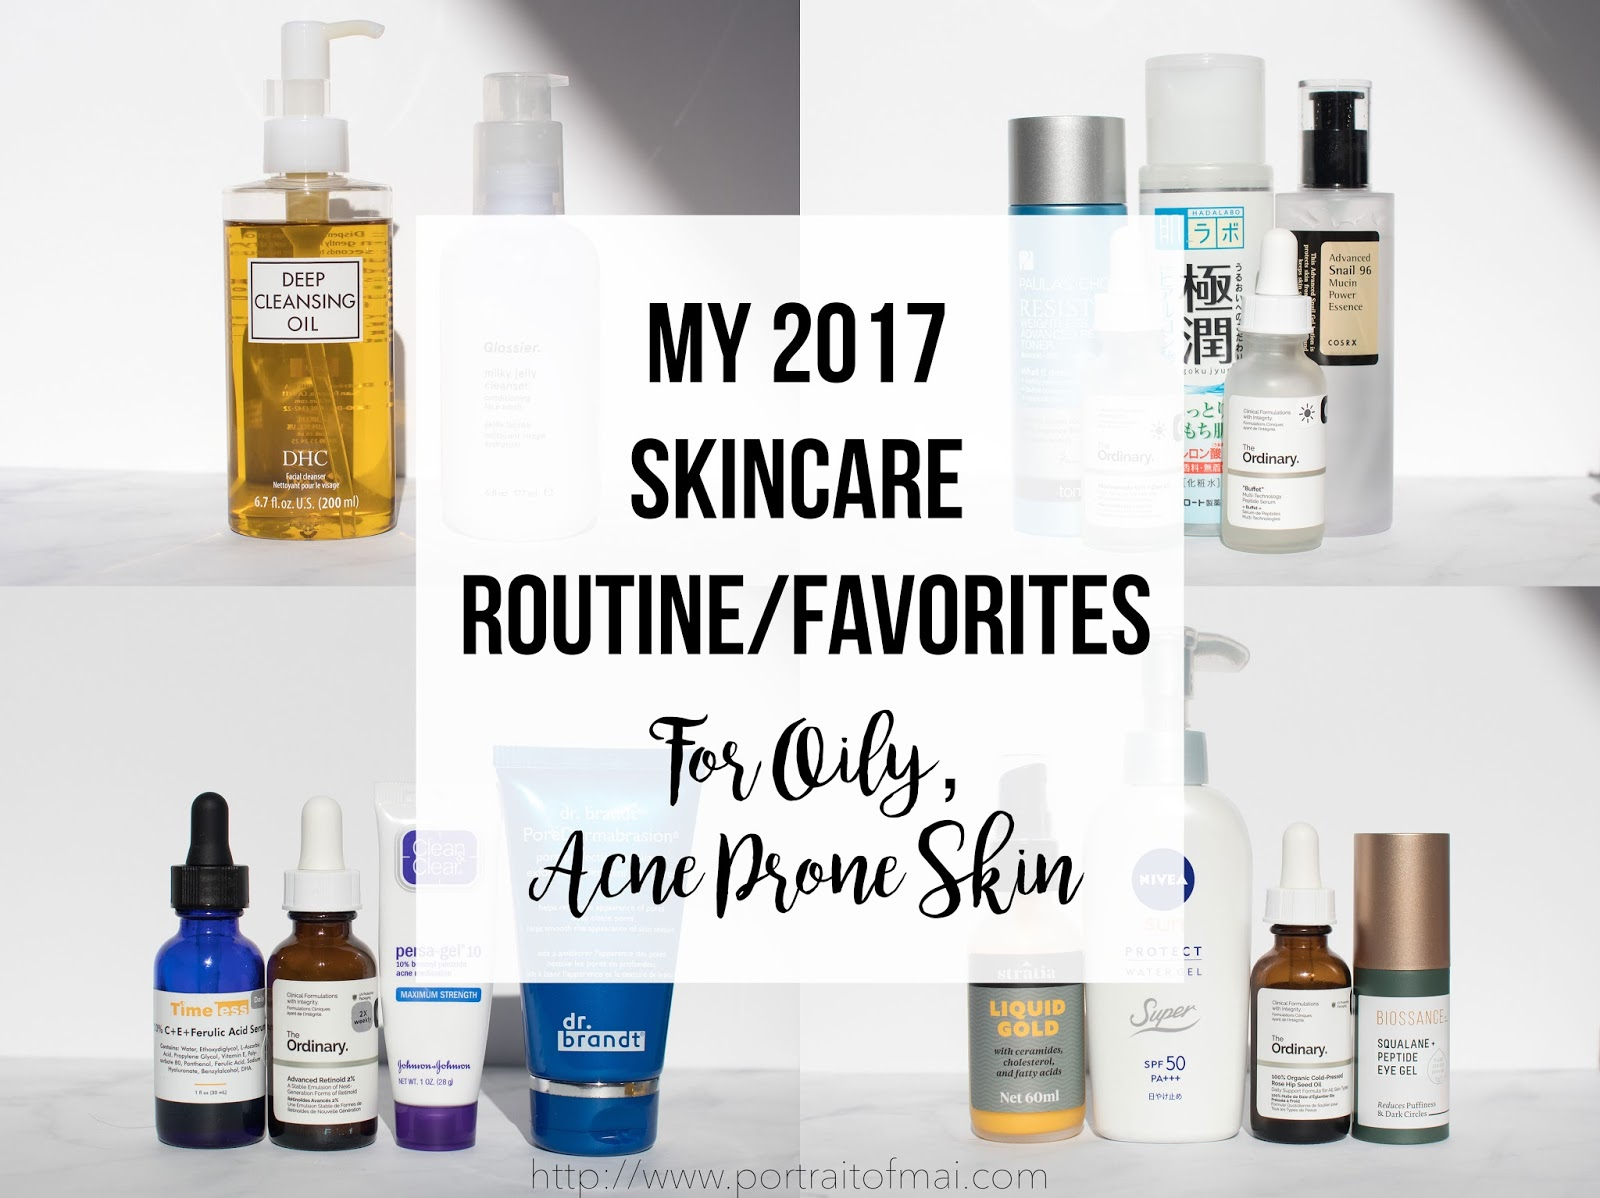 Skincare Routine for Oily Acne Prone Skin